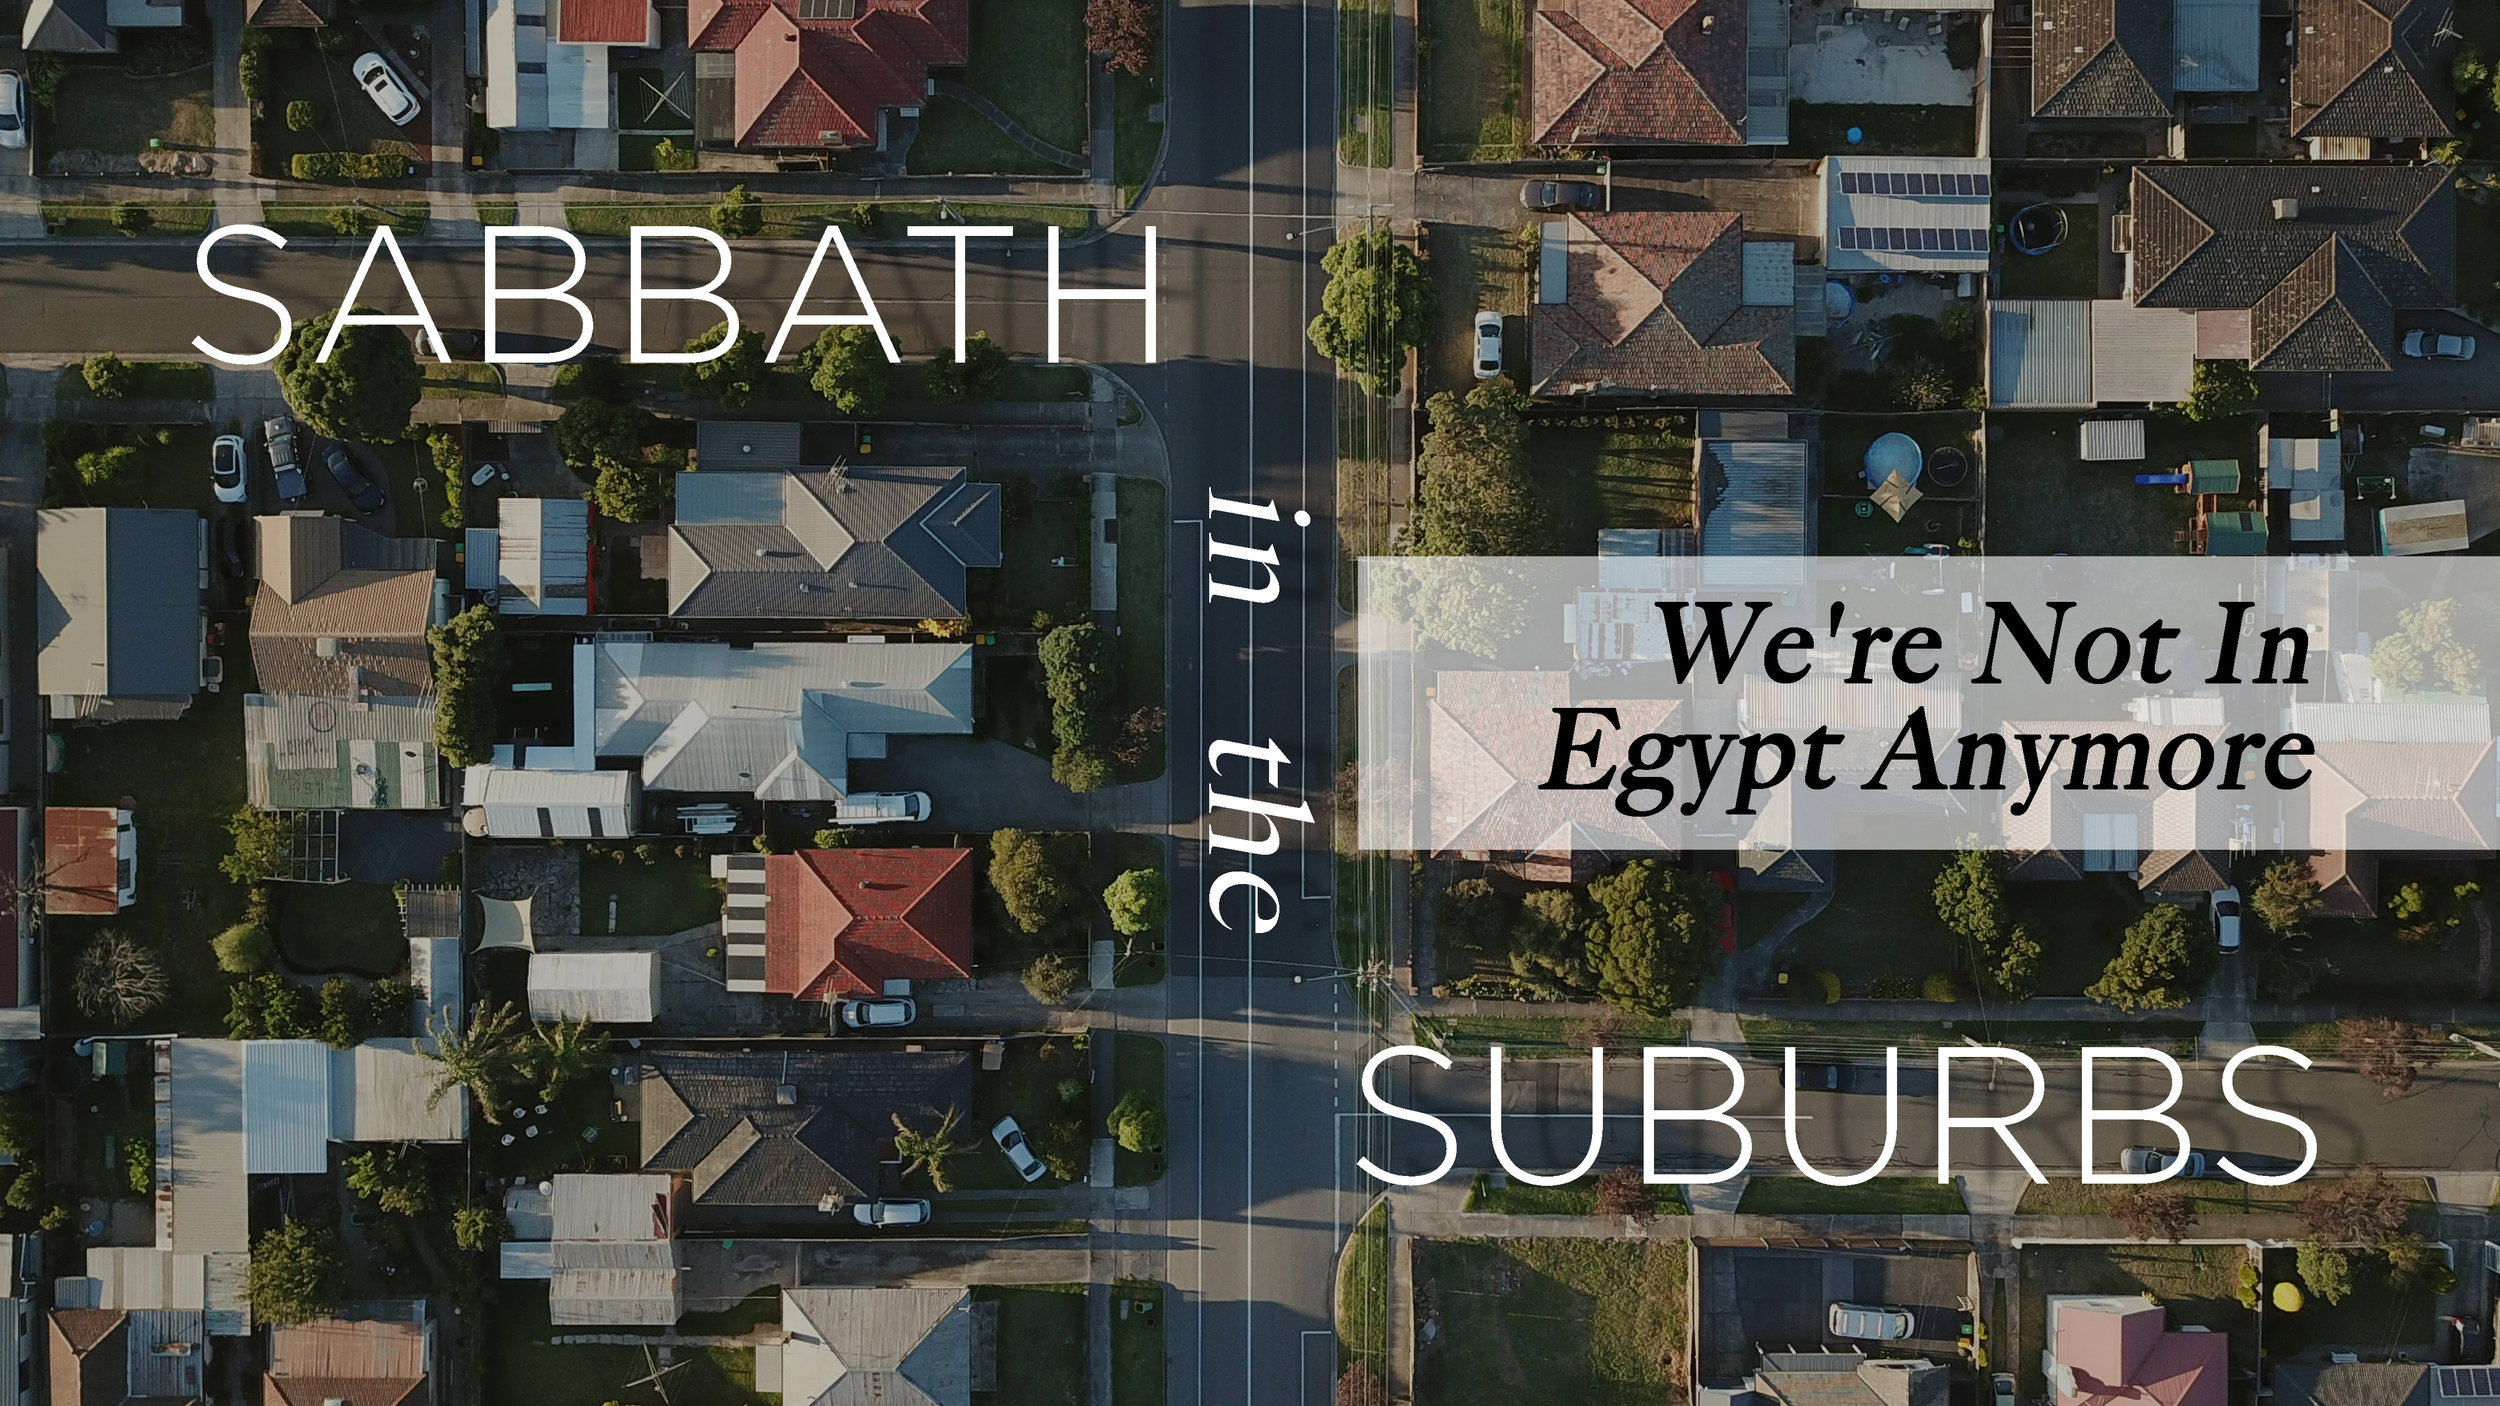 screen_art_sabbath_in_the_suburbs_2019_zoom_06162019.jpg